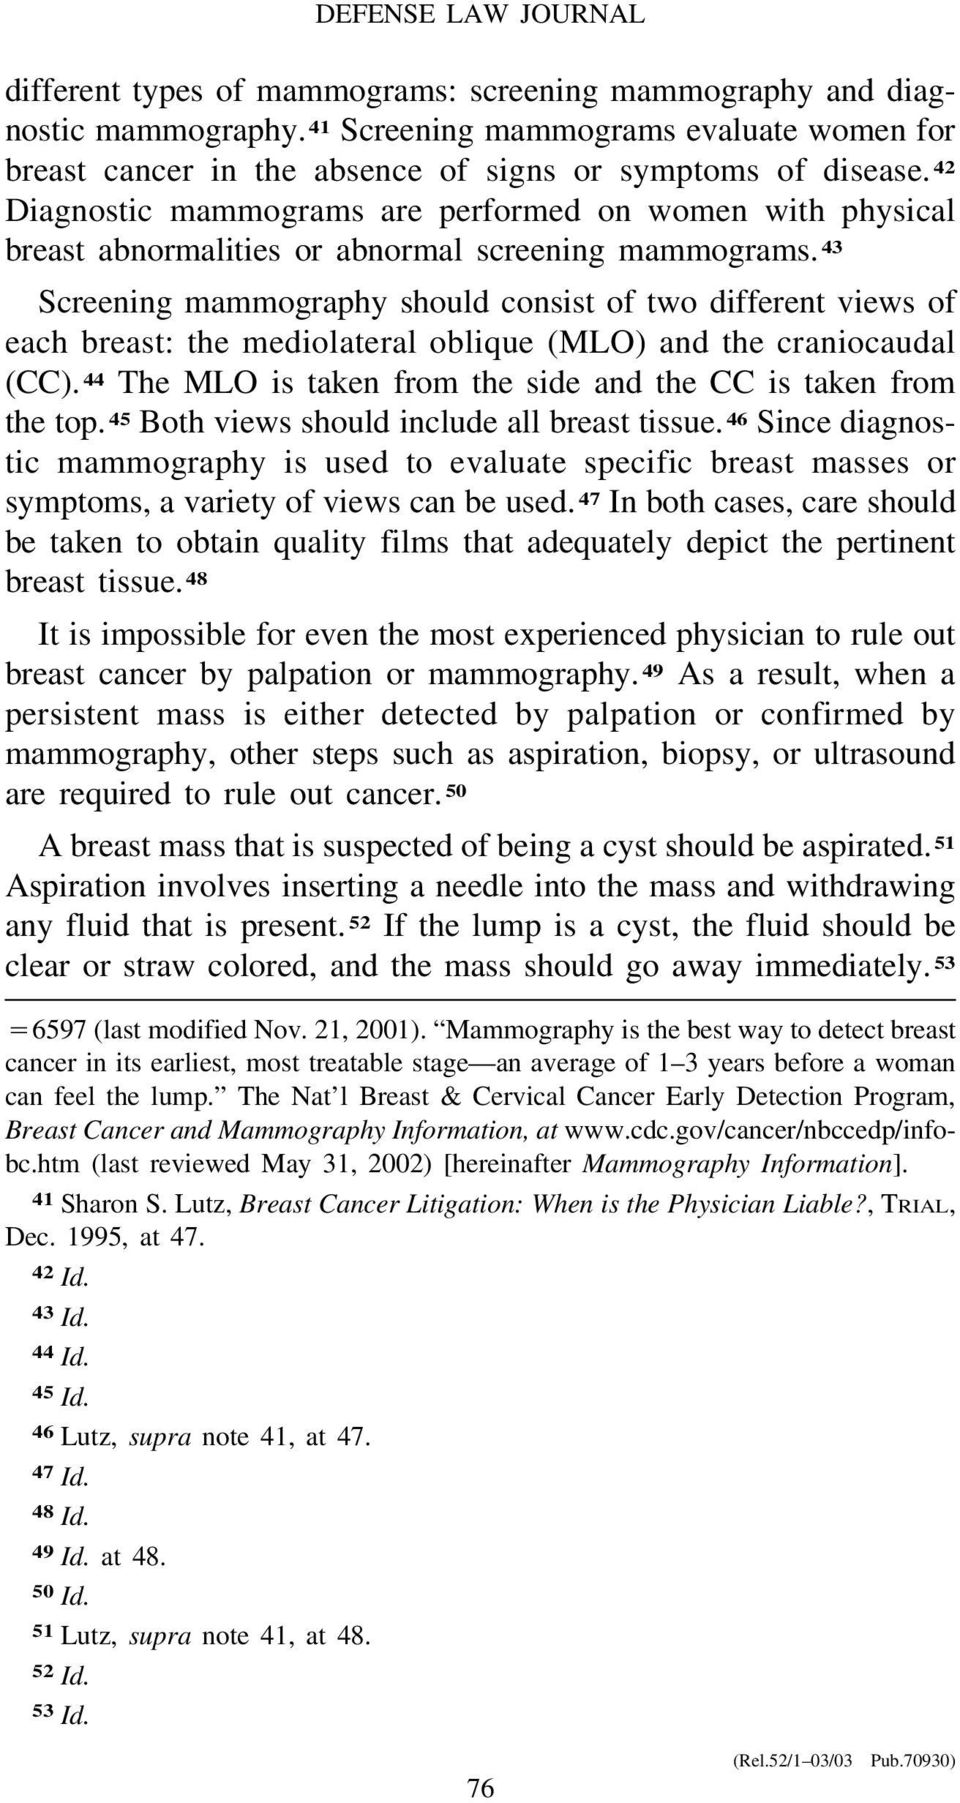 43 Screening mammography should consist of two different views of each breast: the mediolateral oblique (MLO) and the craniocaudal (CC).